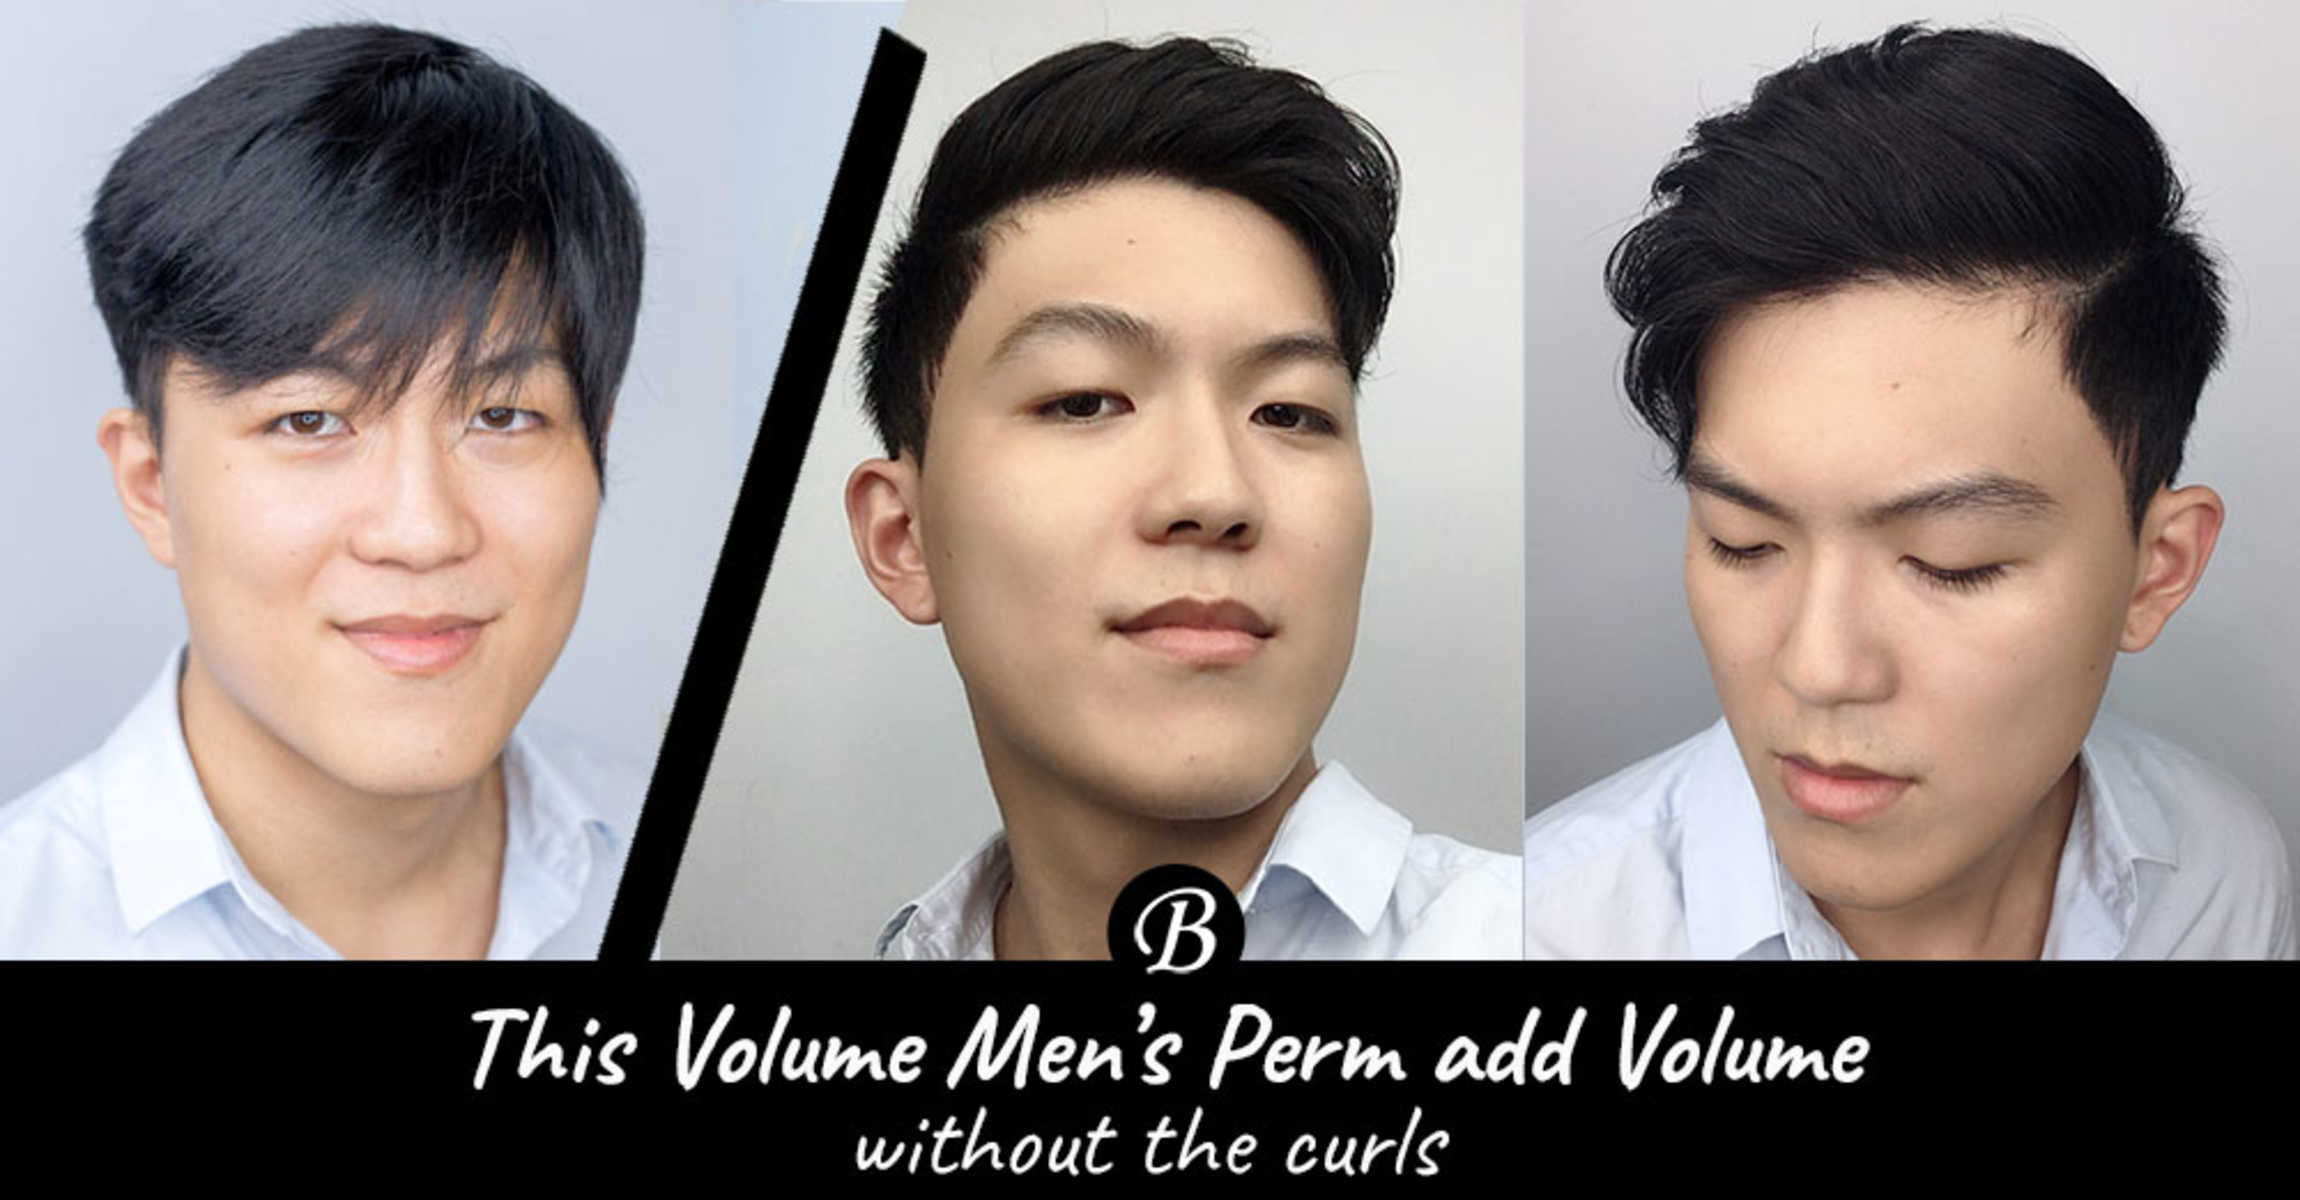 Men's Volume Perm at Pro Trim Adds Volume Without the Curls